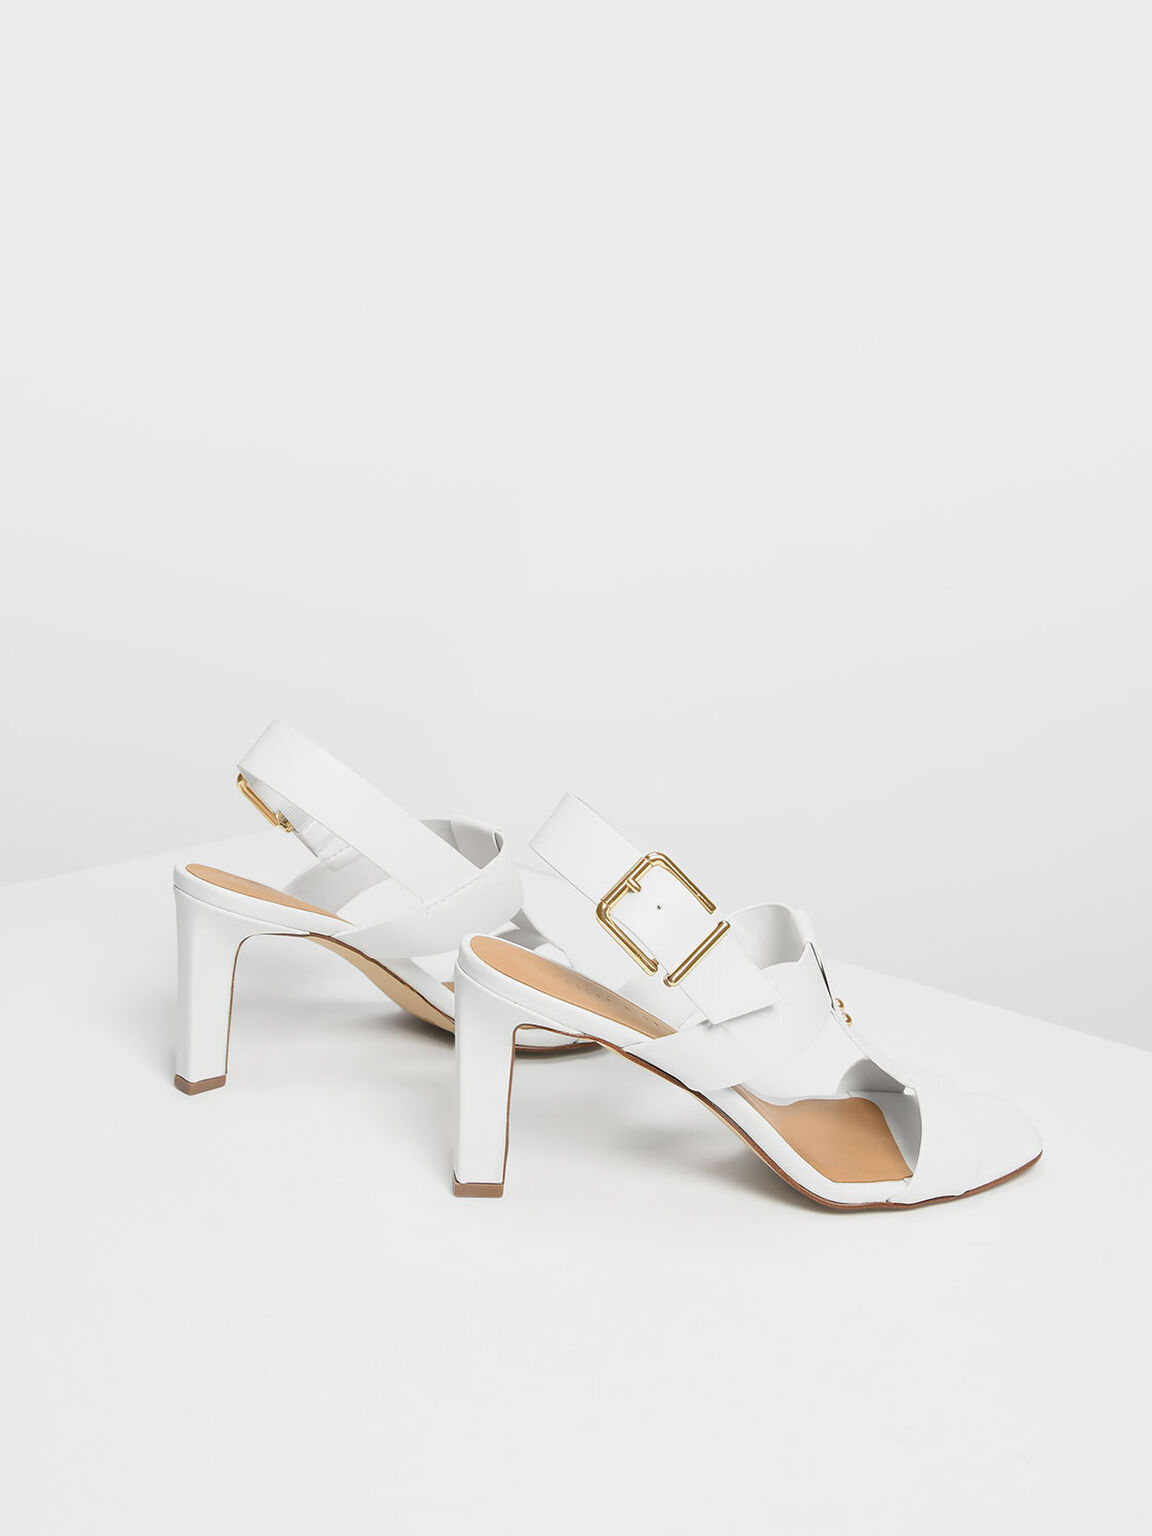 T-Bar Slingback Heels, White, hi-res